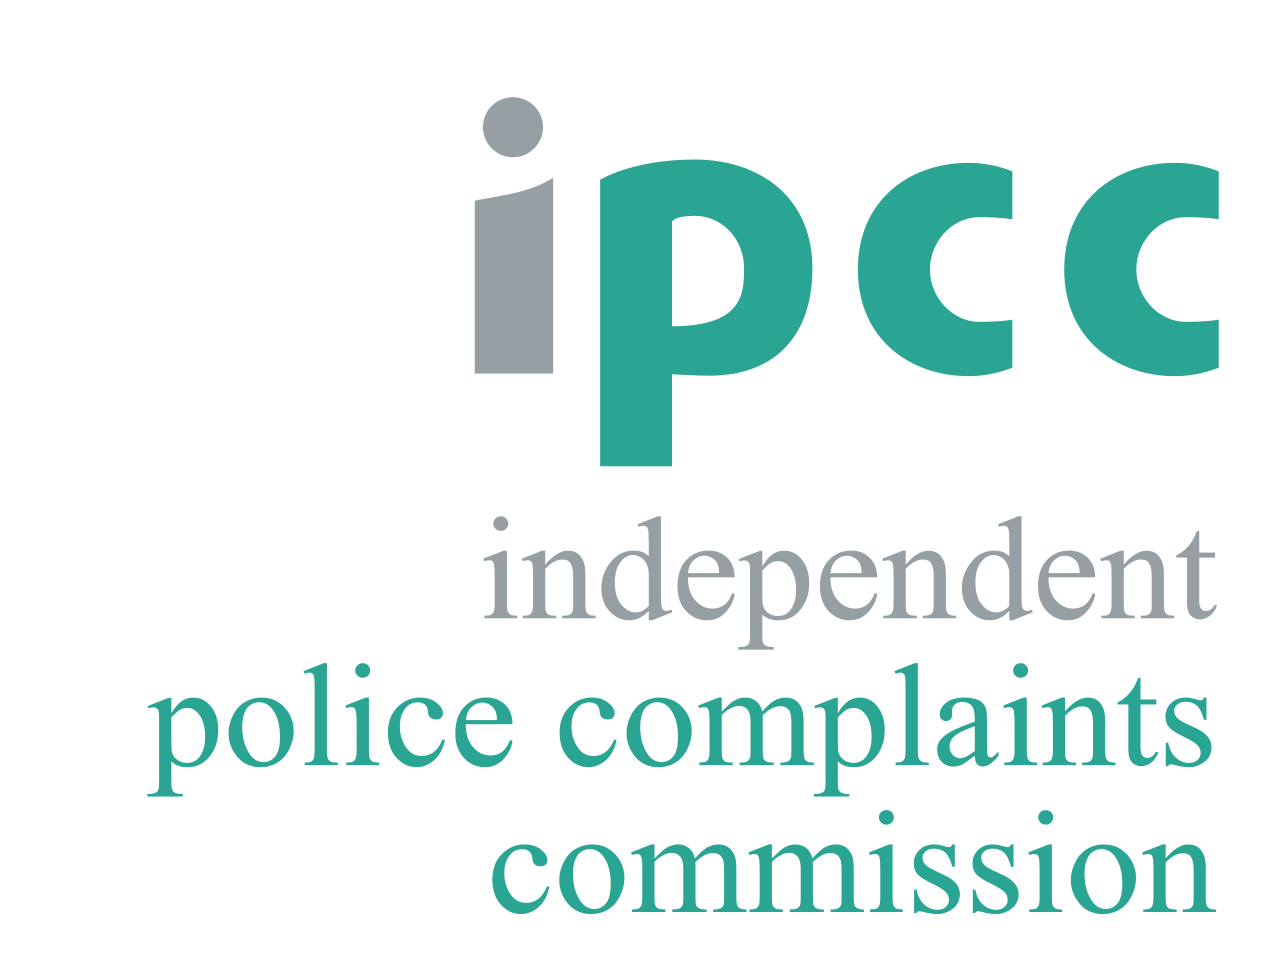 IPCC report into use of force by police officers highlights need for greater scrutiny